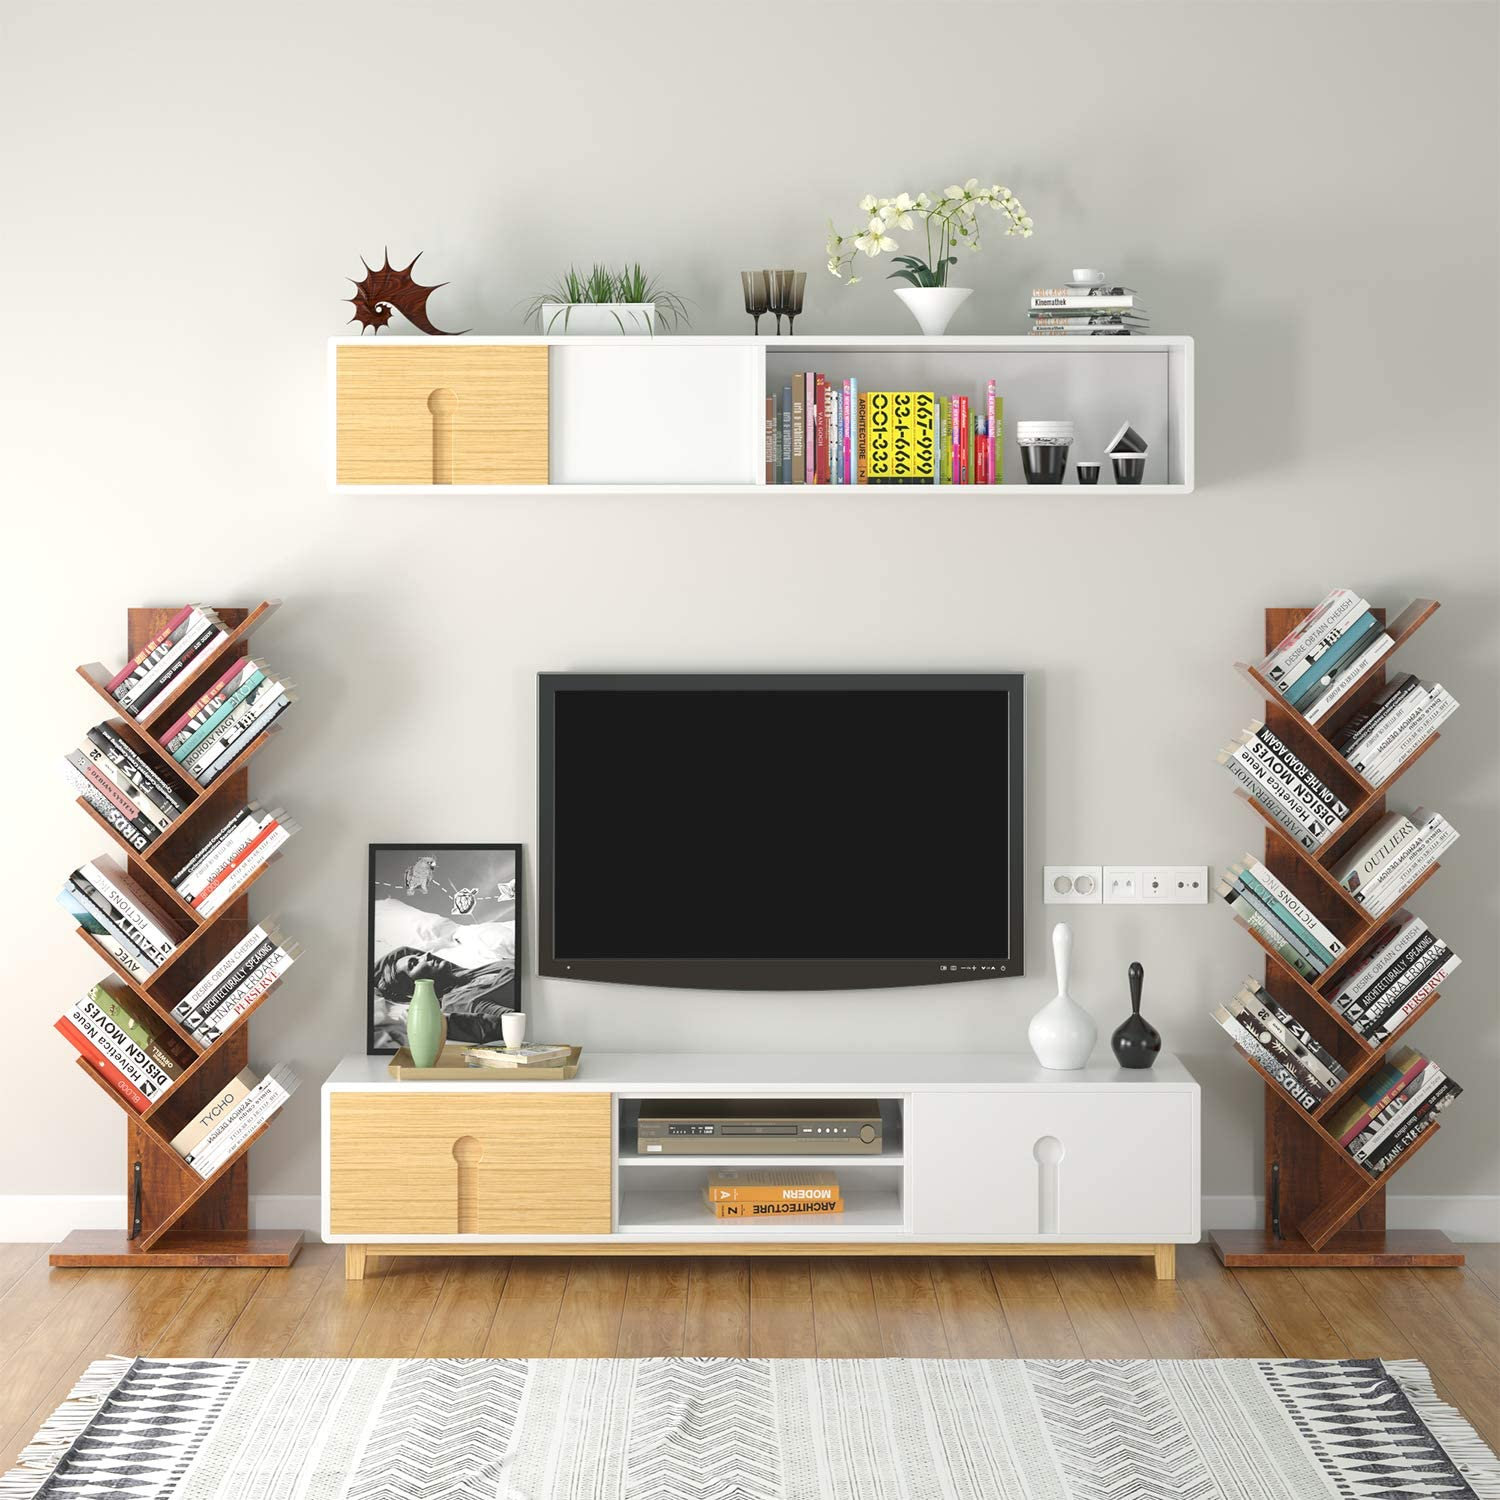 Homfa Tree Bookshelf